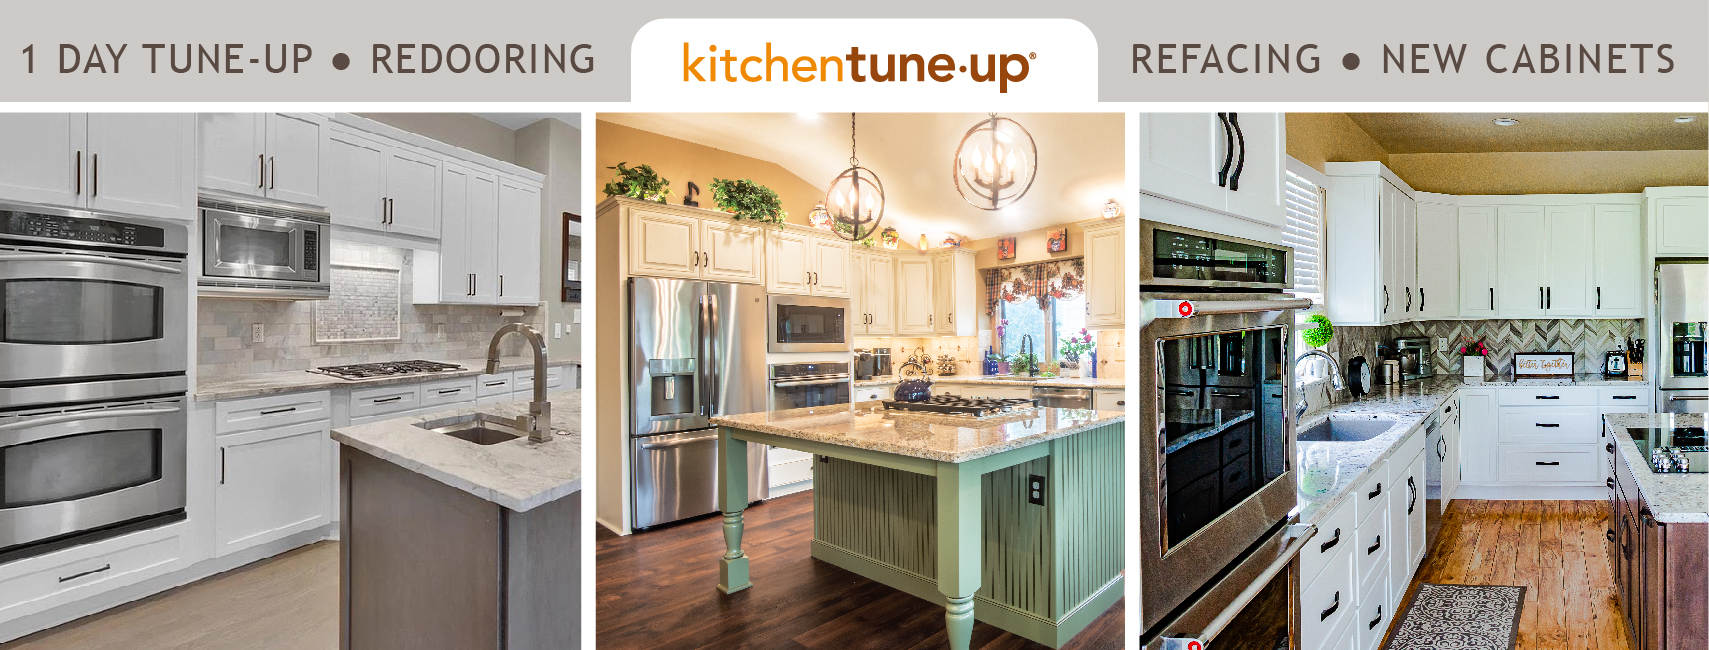 Kitchen Tune-Up reviews | 2209 W Betty Elyse Ln - Phoenix AZ